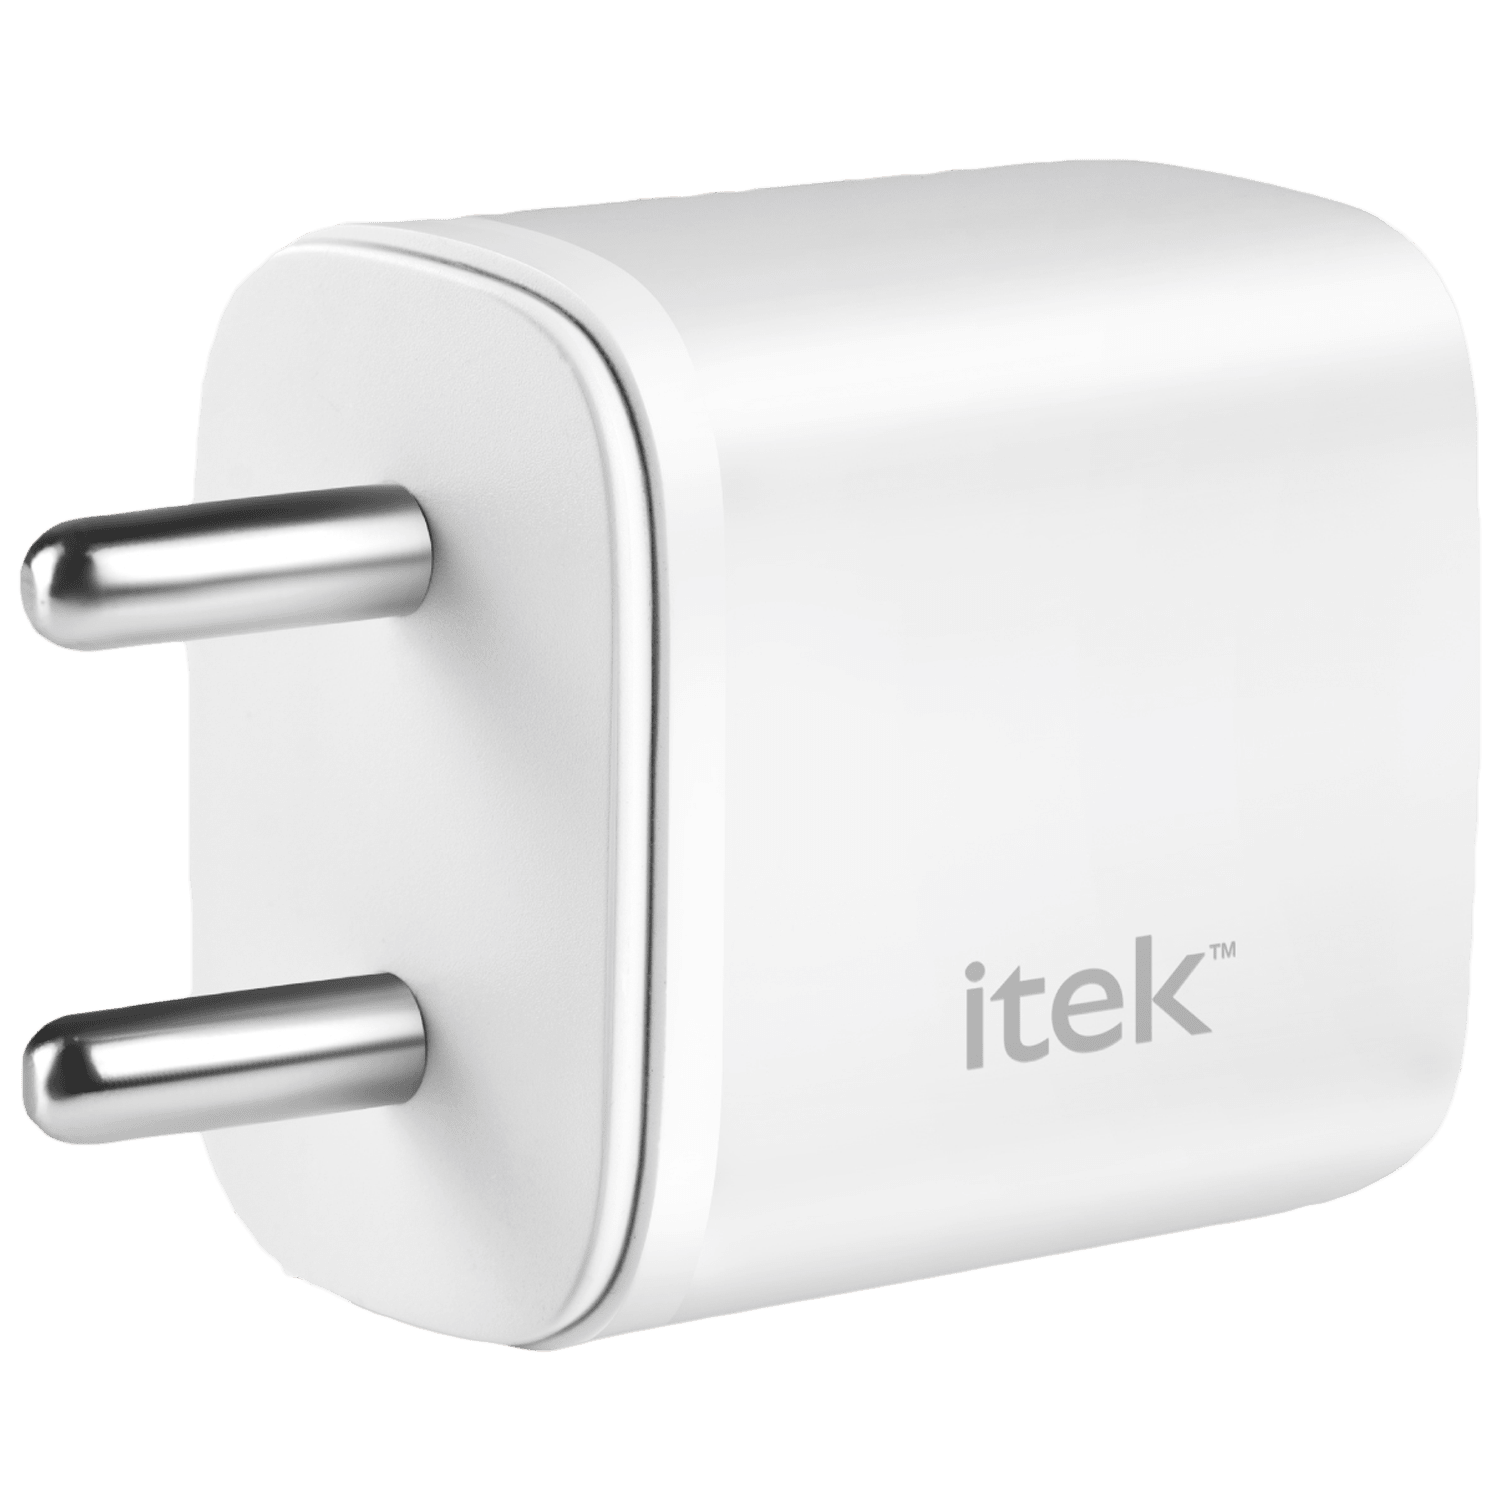 Itek 20 Watts/2.1 Amps 2-Port USB Wall Charging Adapter (Fast Charging Capability, 20wQCPD, White)